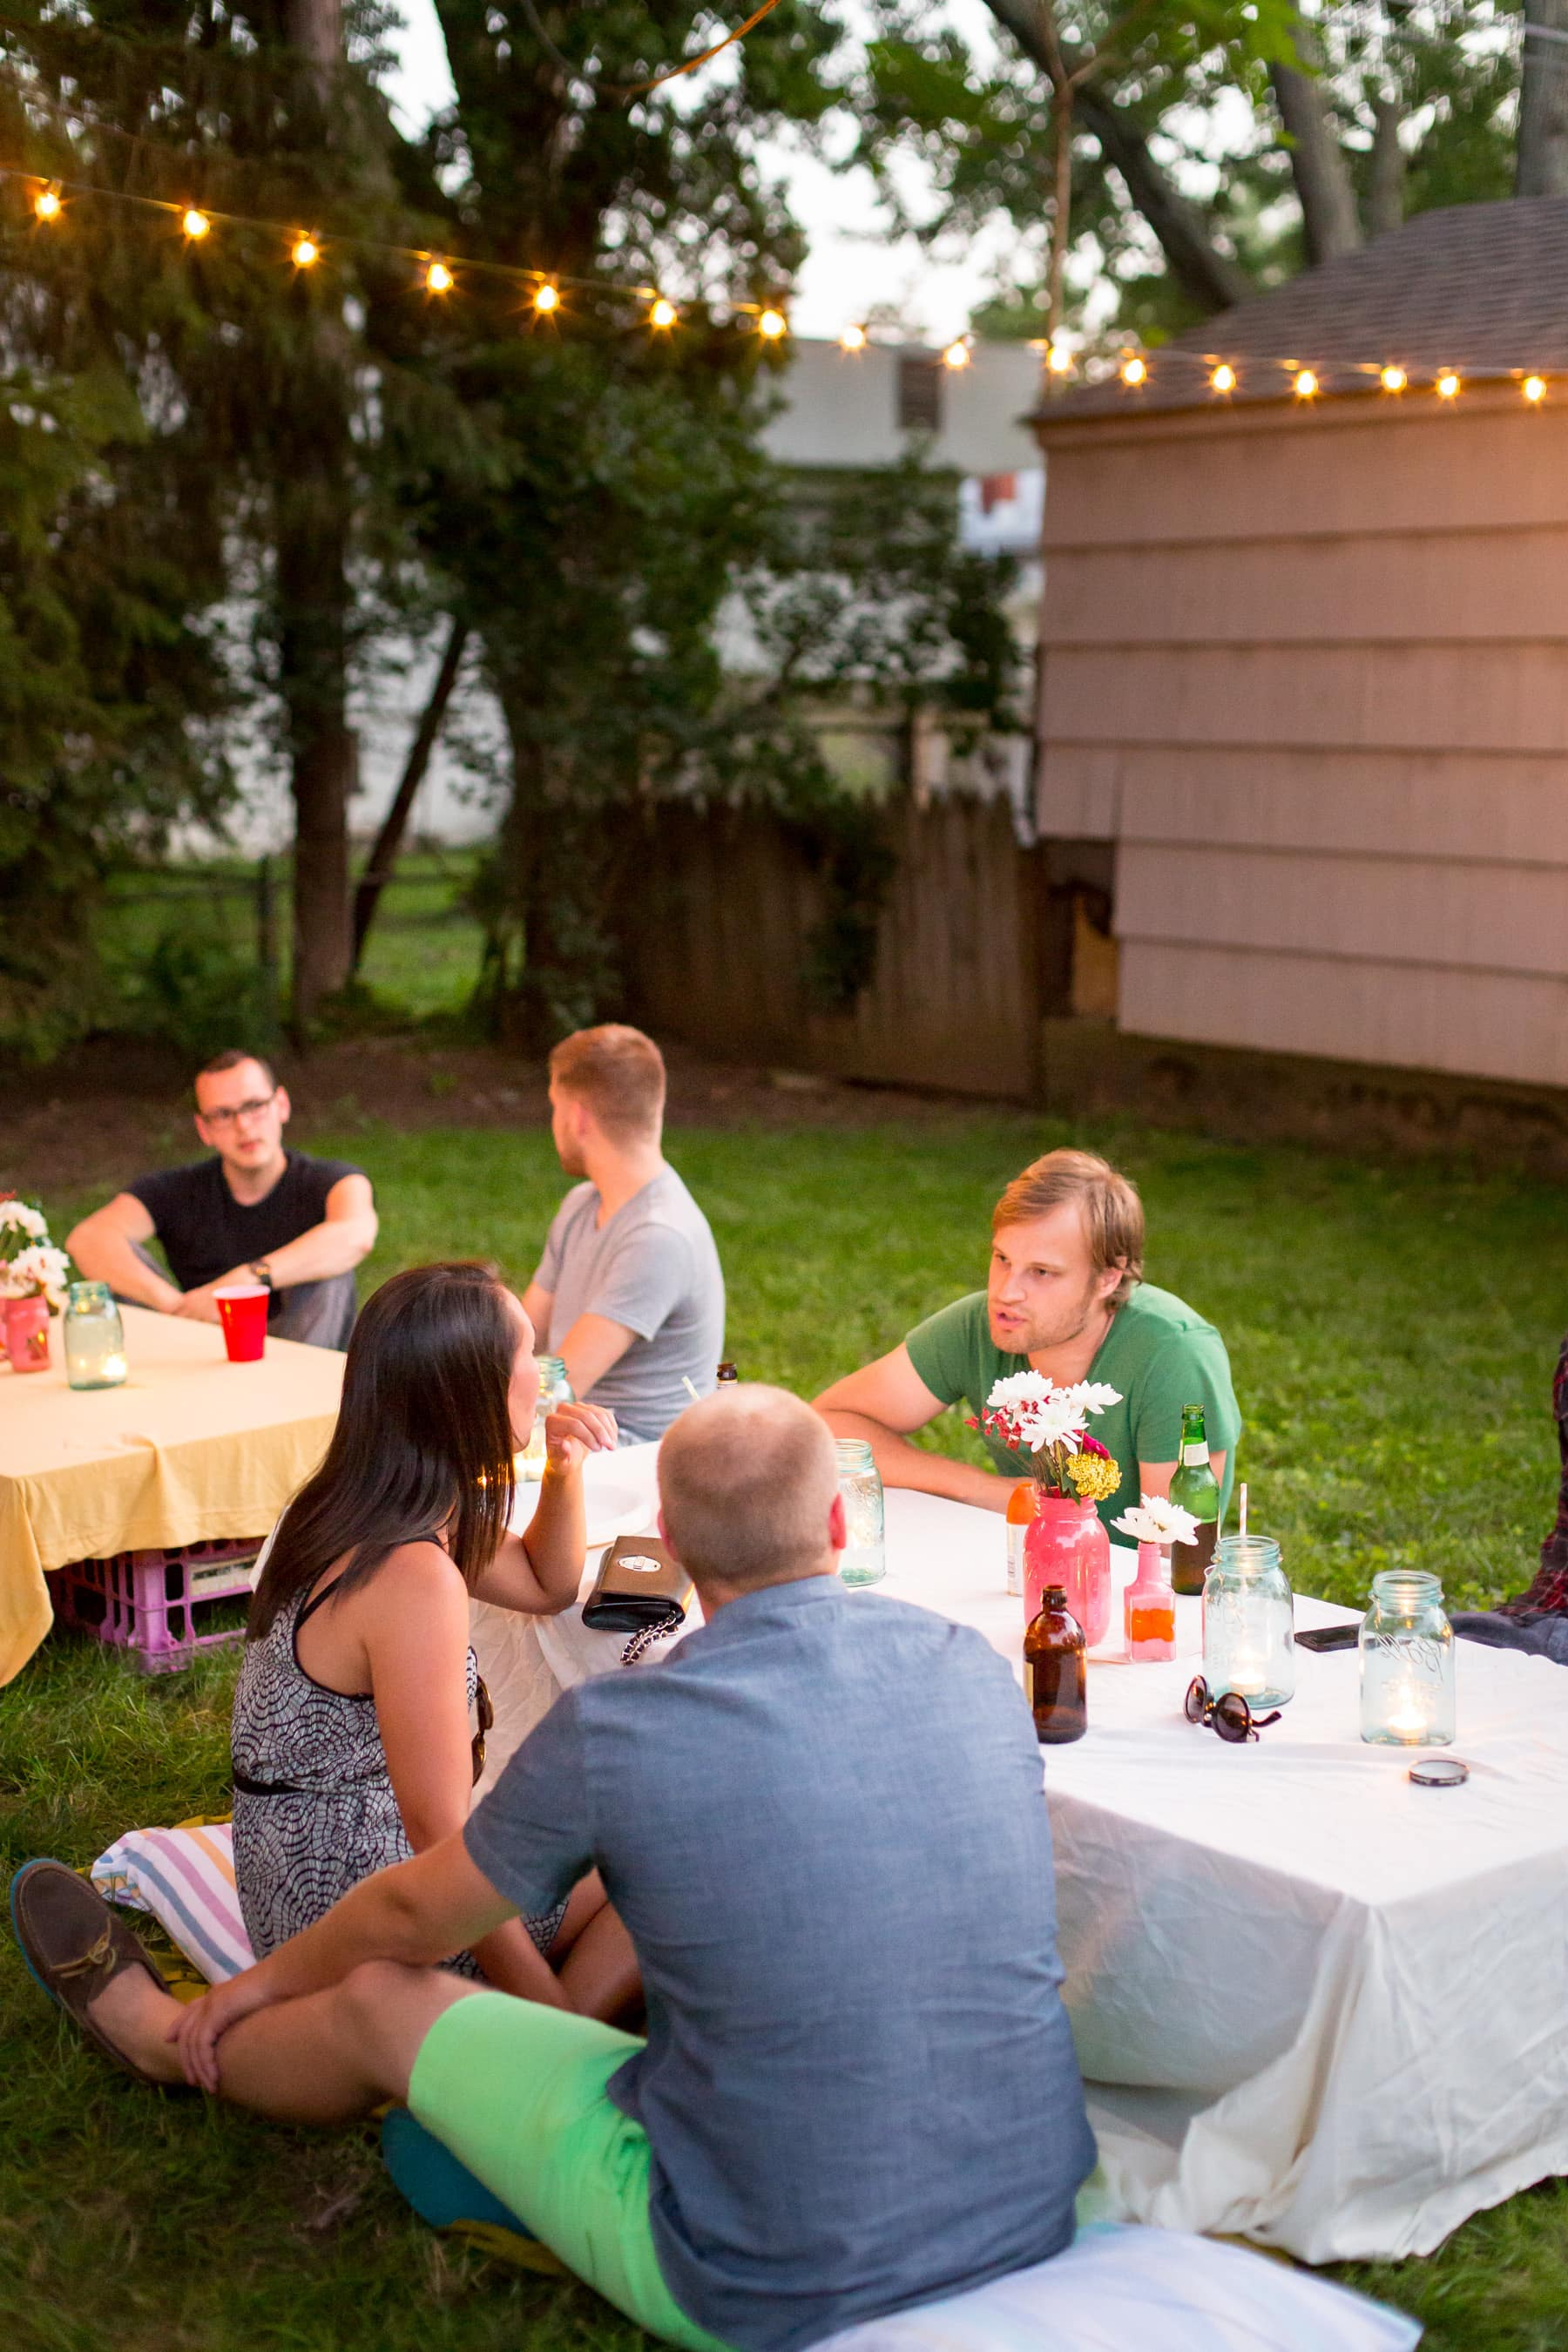 A Backyard S'mores Party: gallery image 24